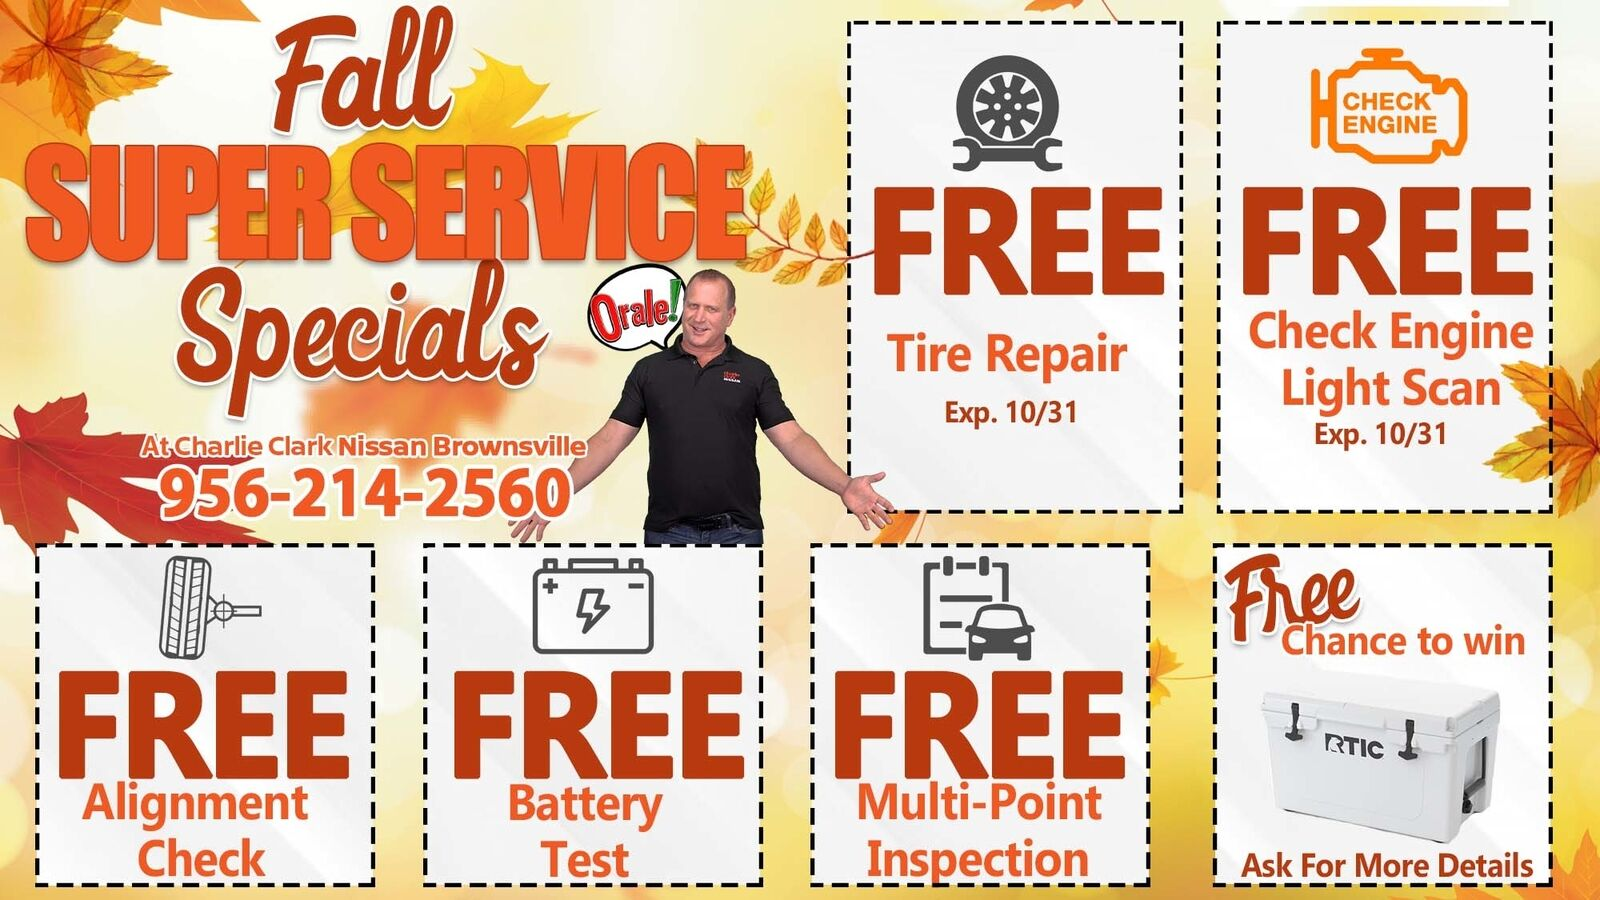 Fall Service Coupons